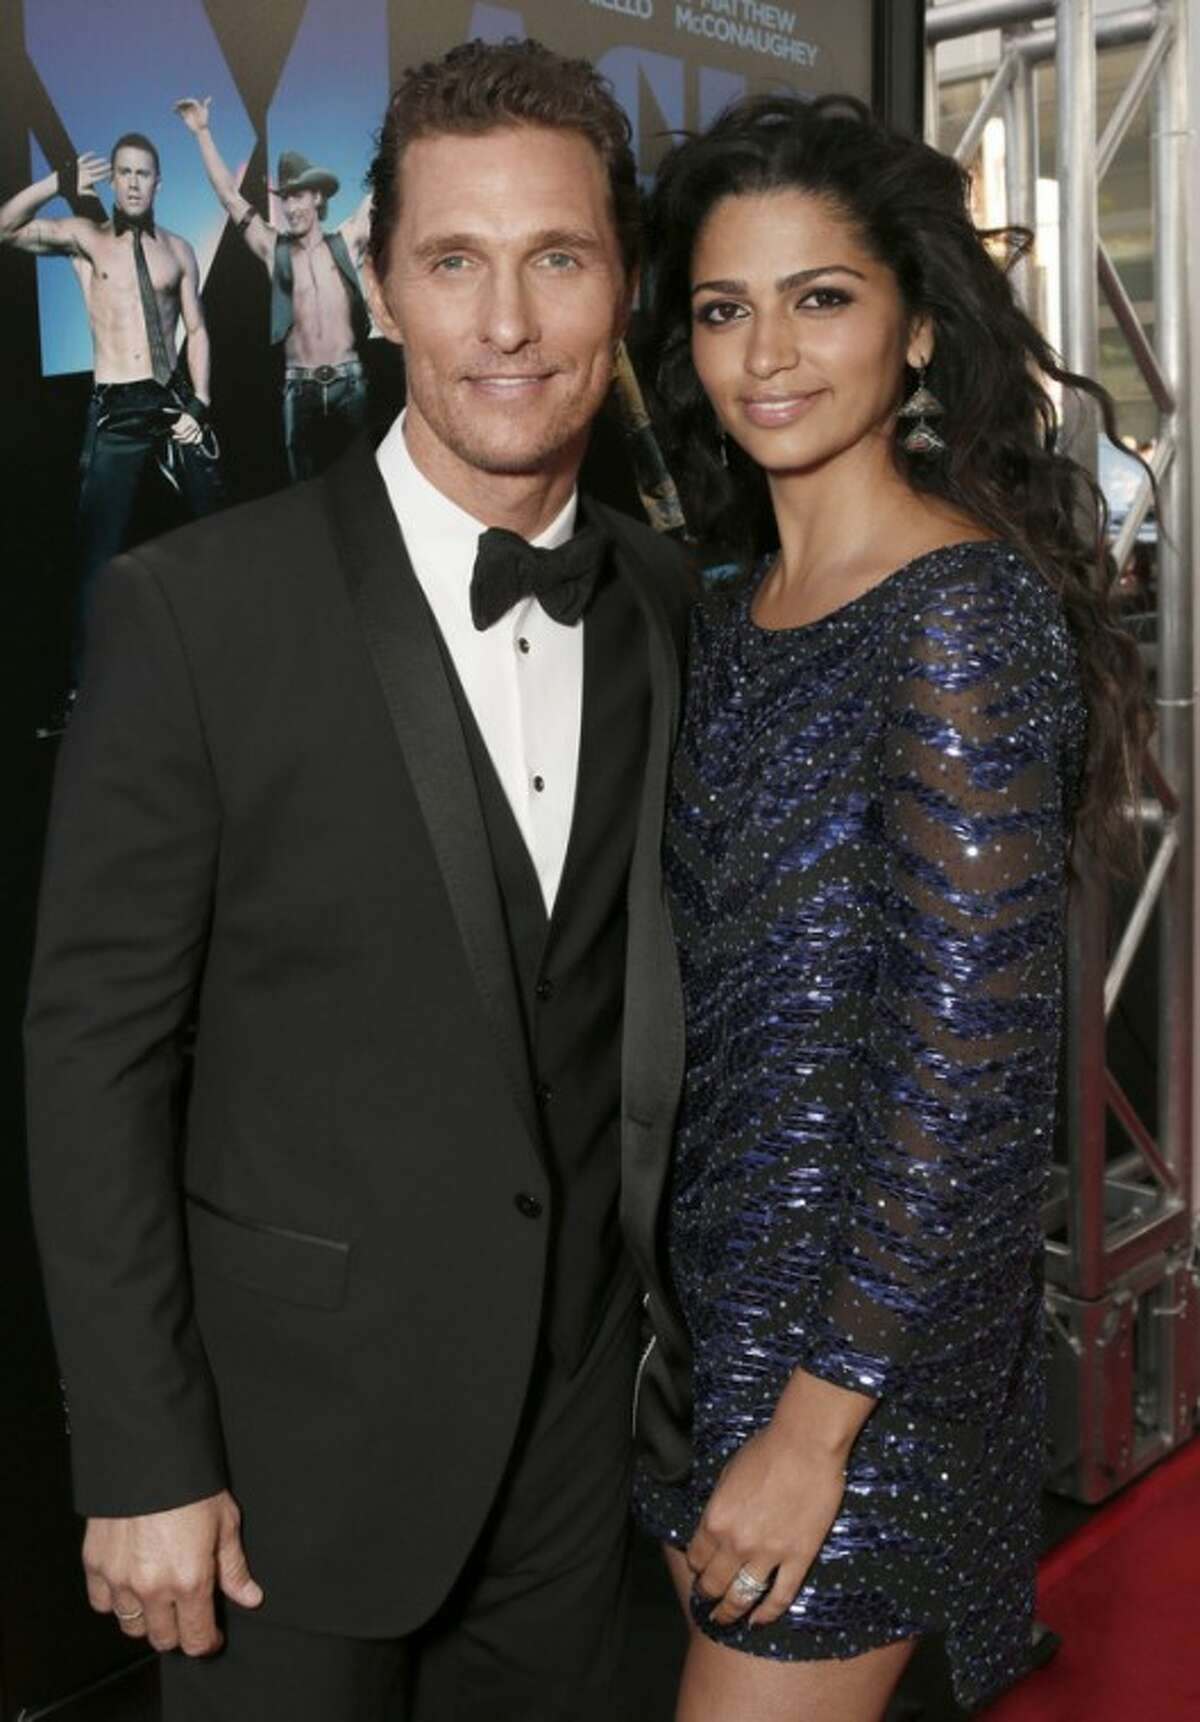 """FILE - This June 24, 2012 file photo shows actor Matthew McConaughey and his wife Camila Alves McConaughey attending the premiere of """"Magic Mike"""" at Regal Cinemas L.A. Live in Los Angeles. McConaughey and Alves both tweeted, Wednesday, July 4, 2012, that they were expecting their third child. Forty-two-year-old McConaughey wed 29-year-old Alves last month in a ceremony at their Austin, Texas home. The couple have a son named Levi, who turns 4-years-old this week and a 2-year-old daughter named Vida. (Photo by Todd Williamson/Invision/AP, file)"""